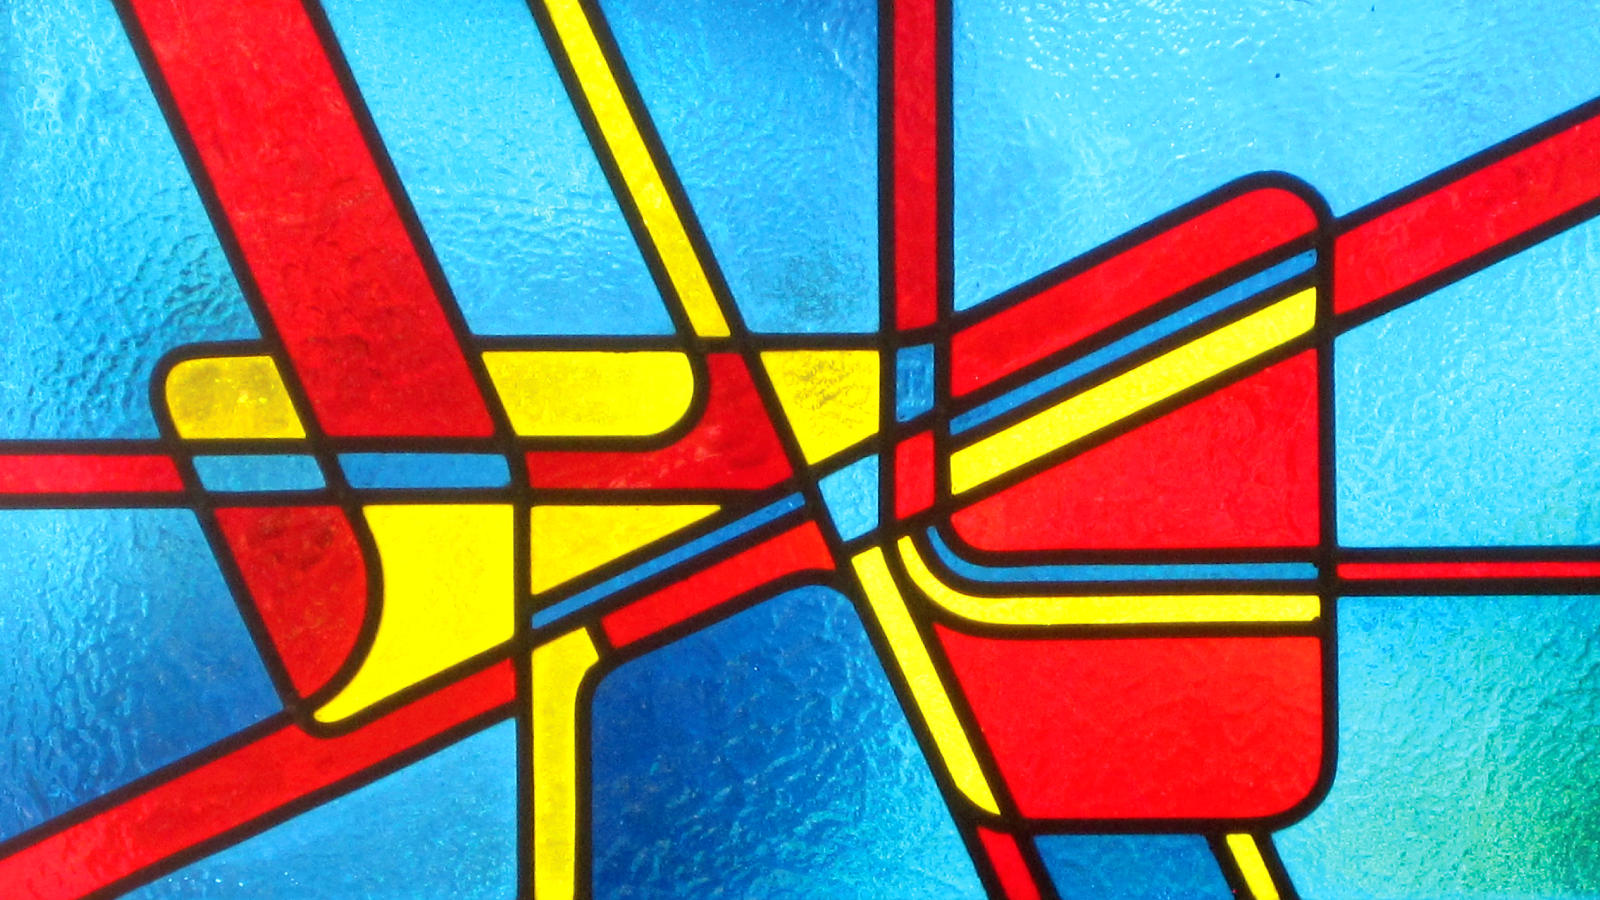 Stained glass image inspired by Fibonacci numbers